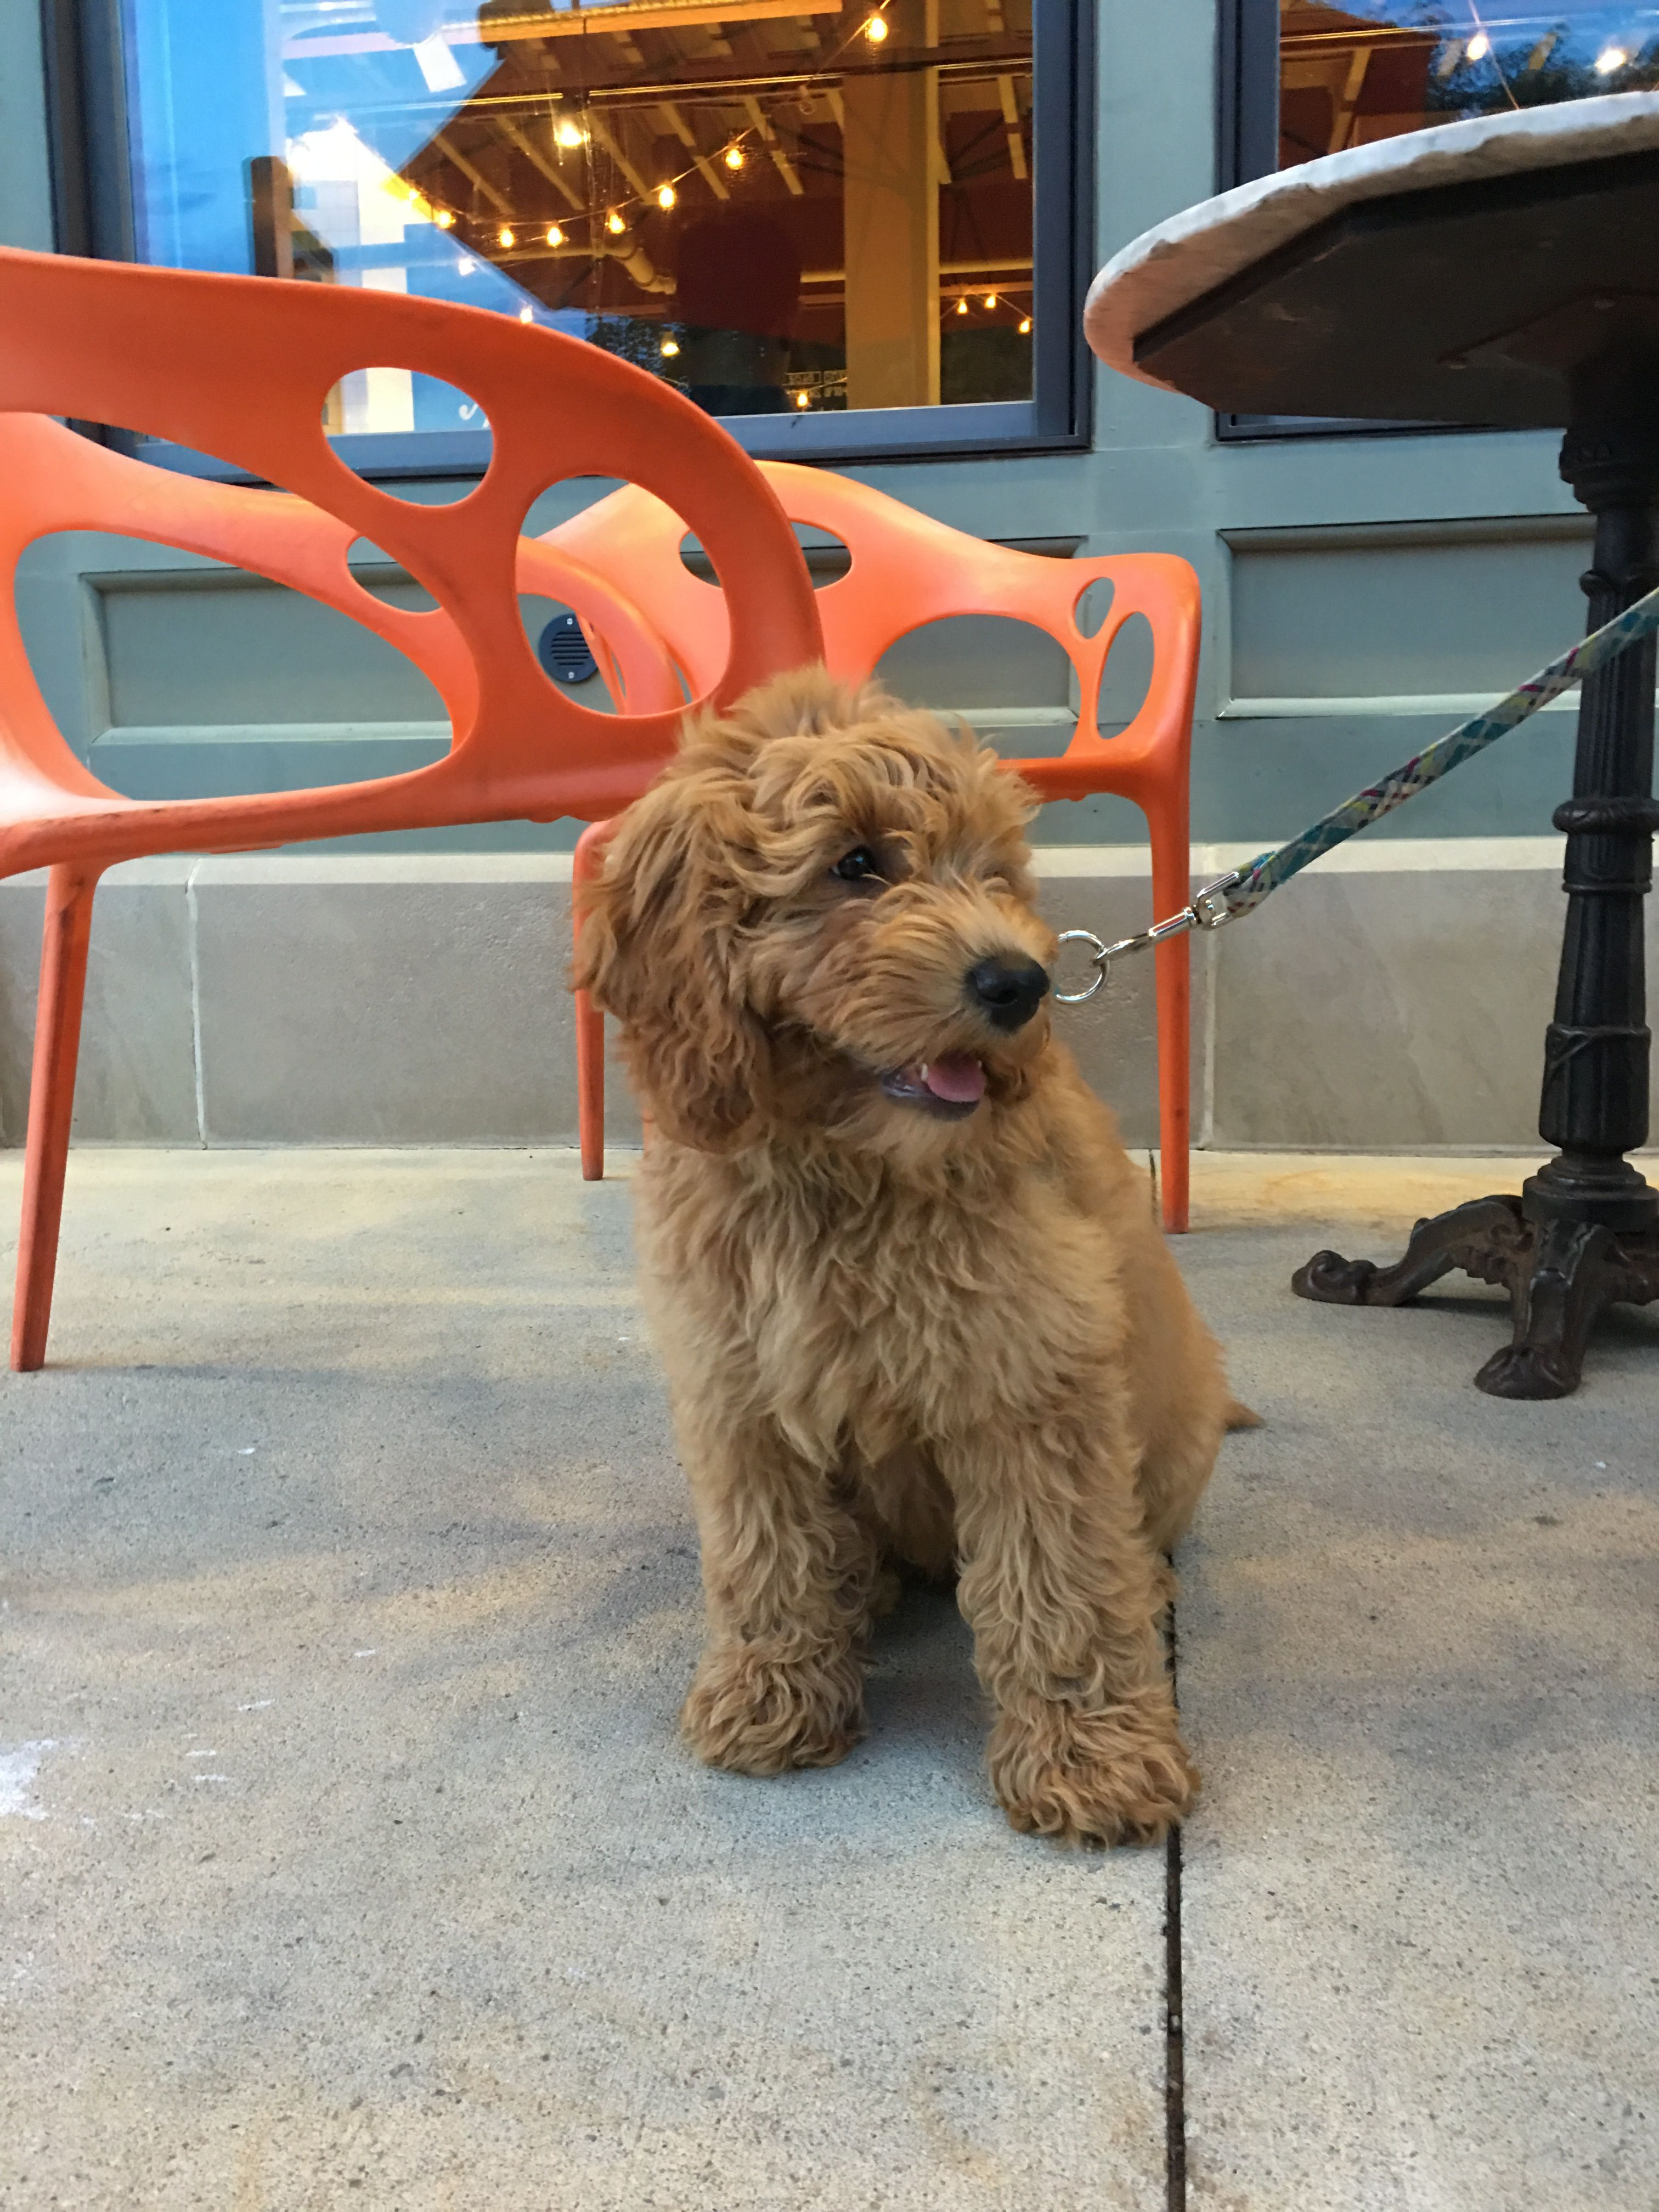 Royal Is Growing Up 3 Months Old F1b Goldendoodle Timberidge Goldendoodles